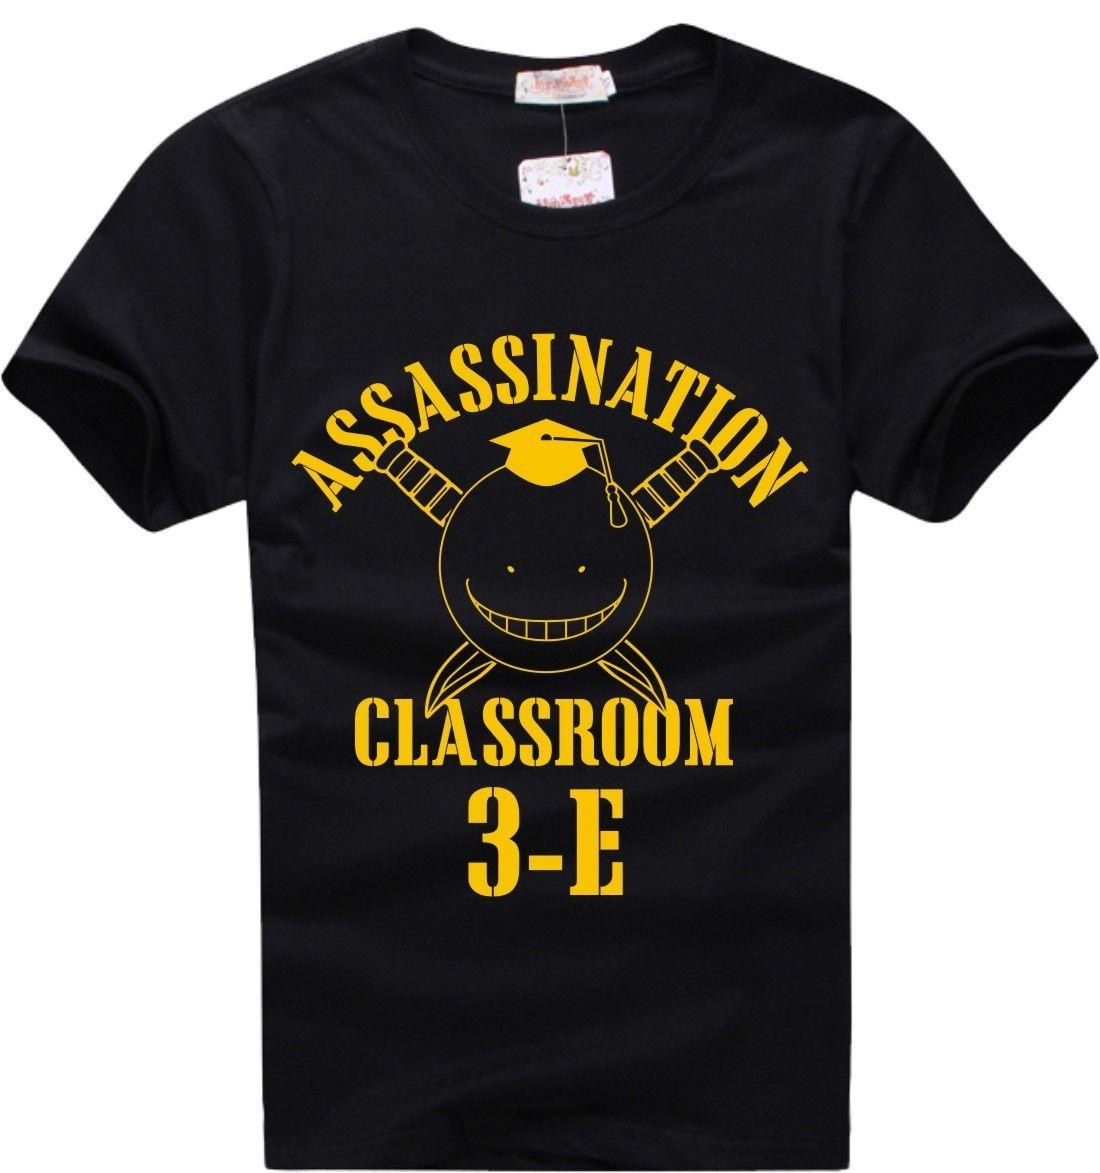 Assassination Classroom Korosensei T-Shirt Animation Comic Cartoon t shirt men Unisex New Fashion tshirt free shipping funny